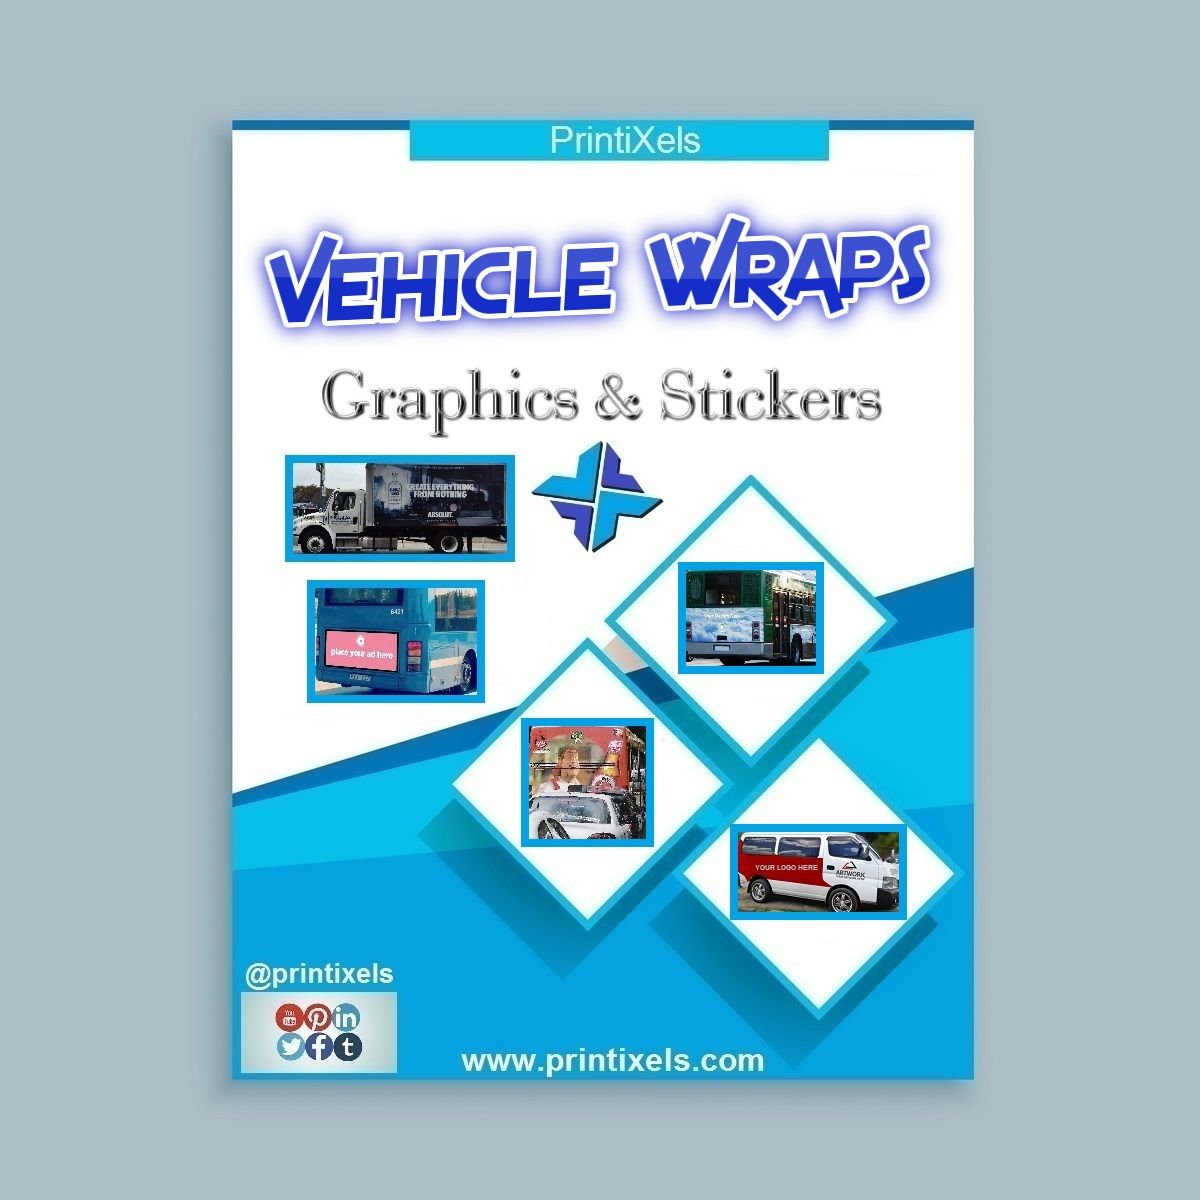 Car sticker maker in delhi - Vehicle Wraps Graphics Stickers Printing Installation